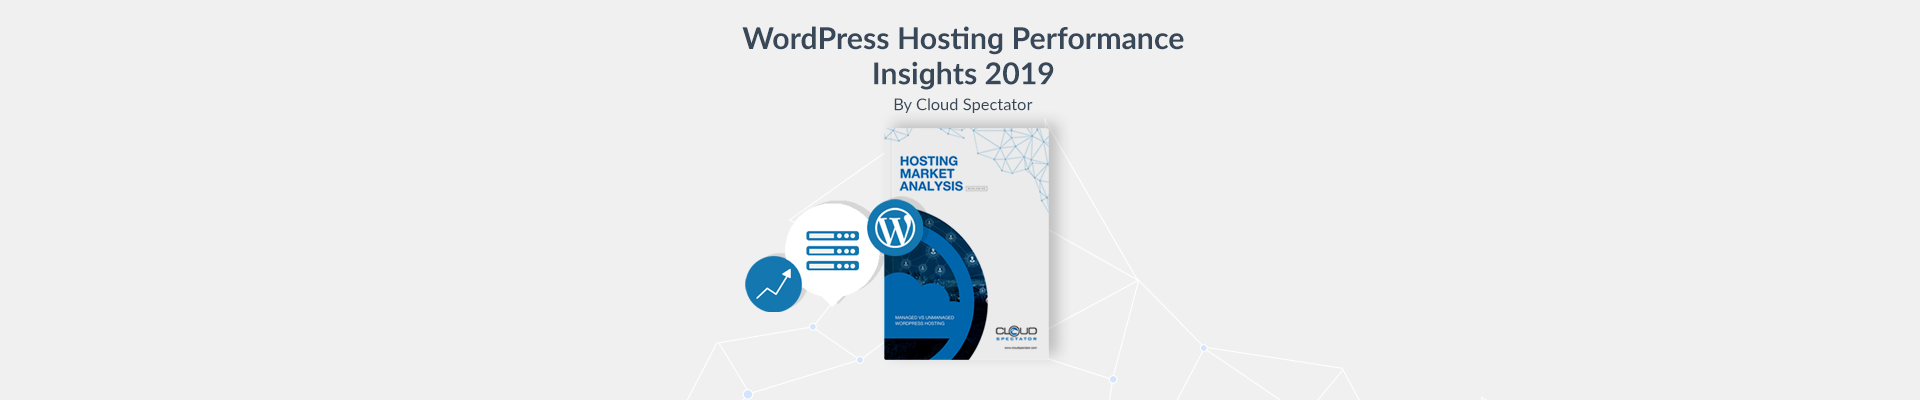 WordPress Hosting Performance Today